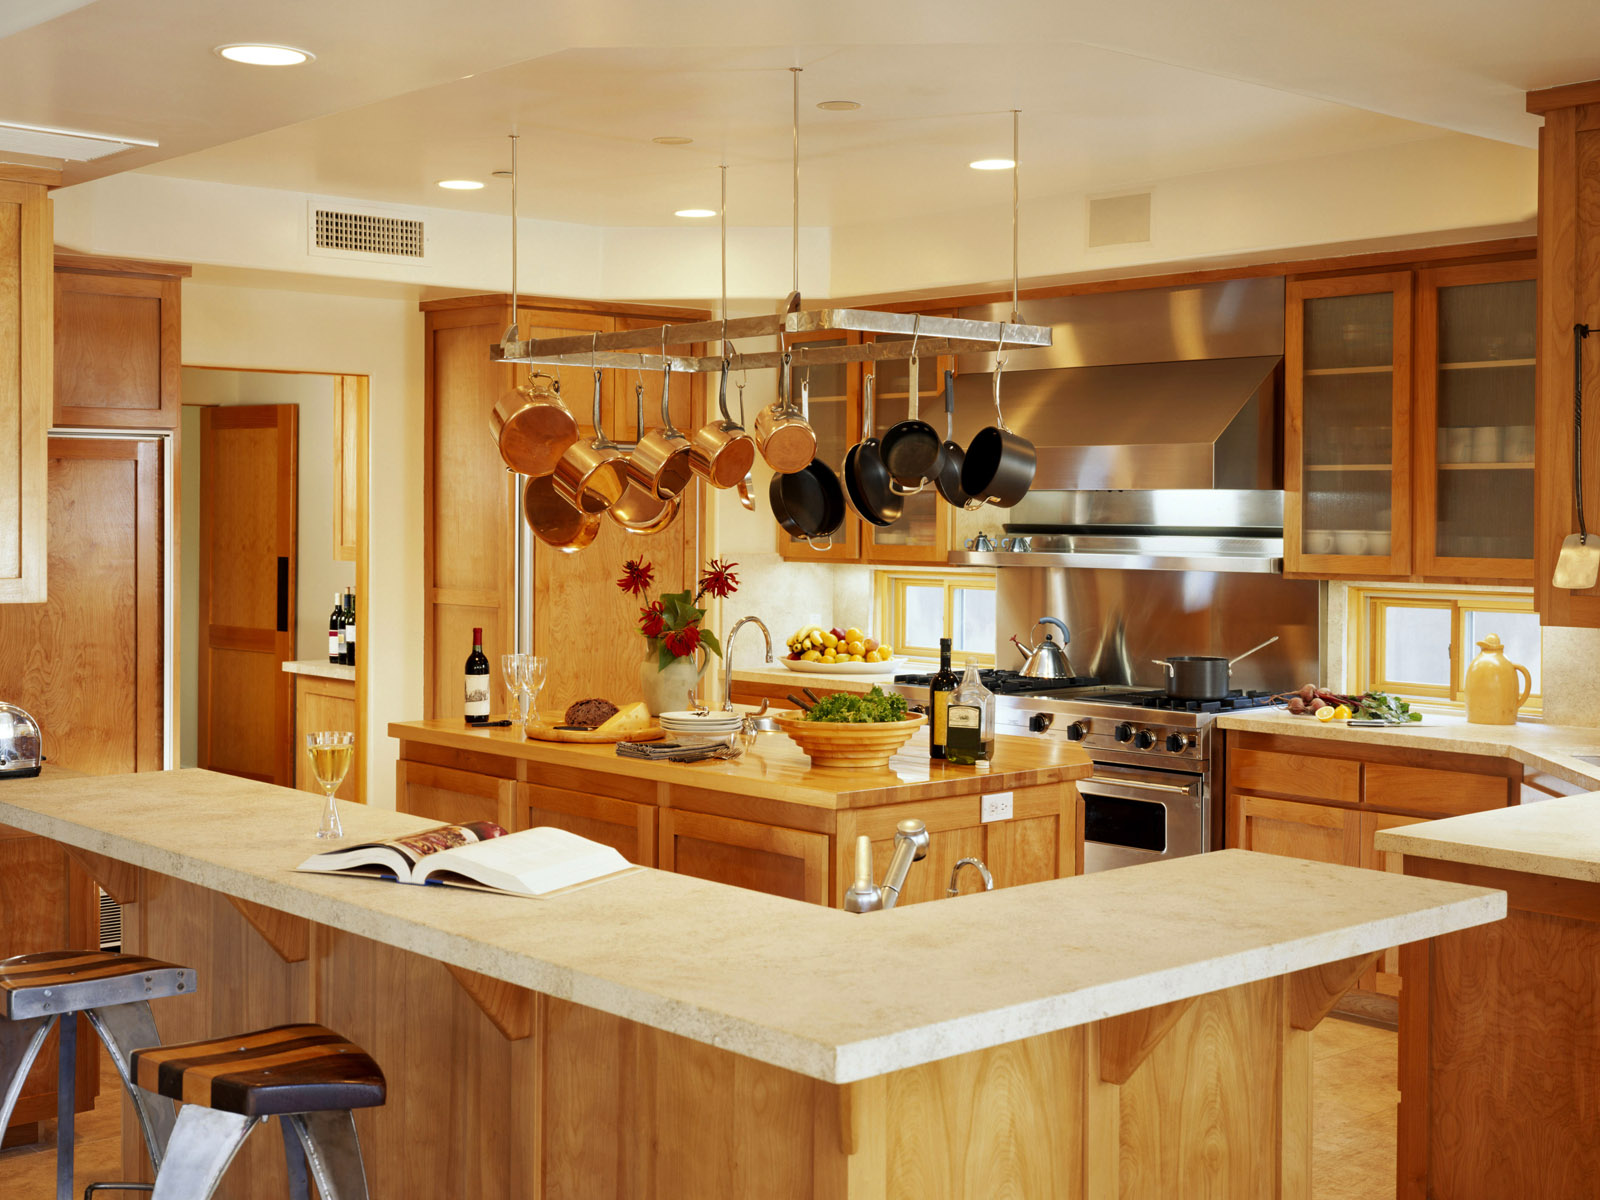 Free Beautiful Kitchen Conditions Wallpapers And